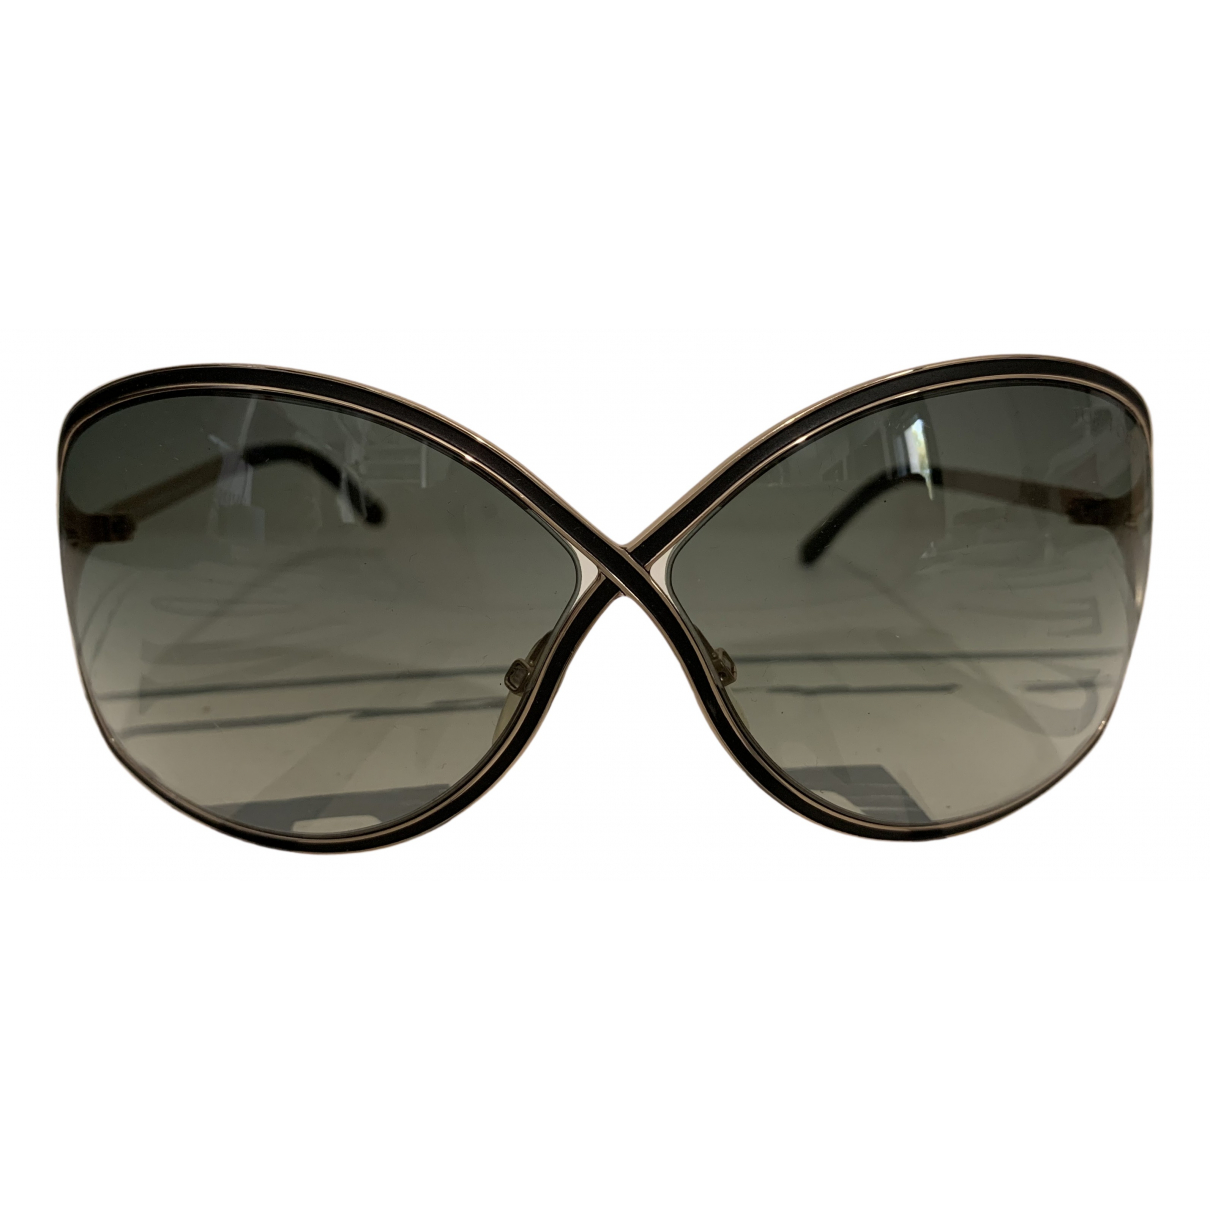 Tom Ford N Gold Metal Sunglasses for Women N